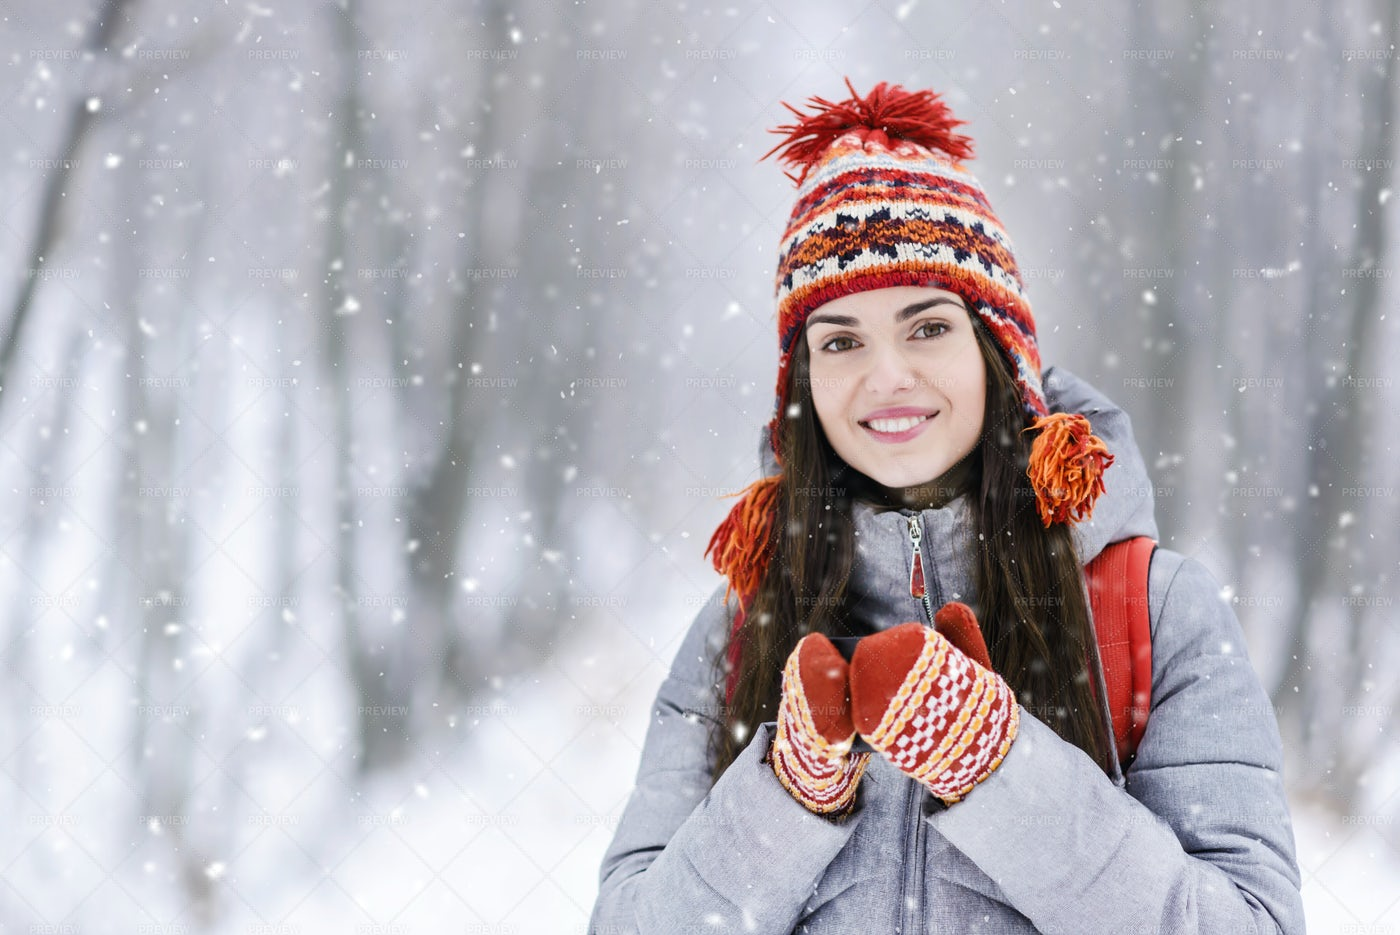 Girl in Snowy Forest: Stock Photos